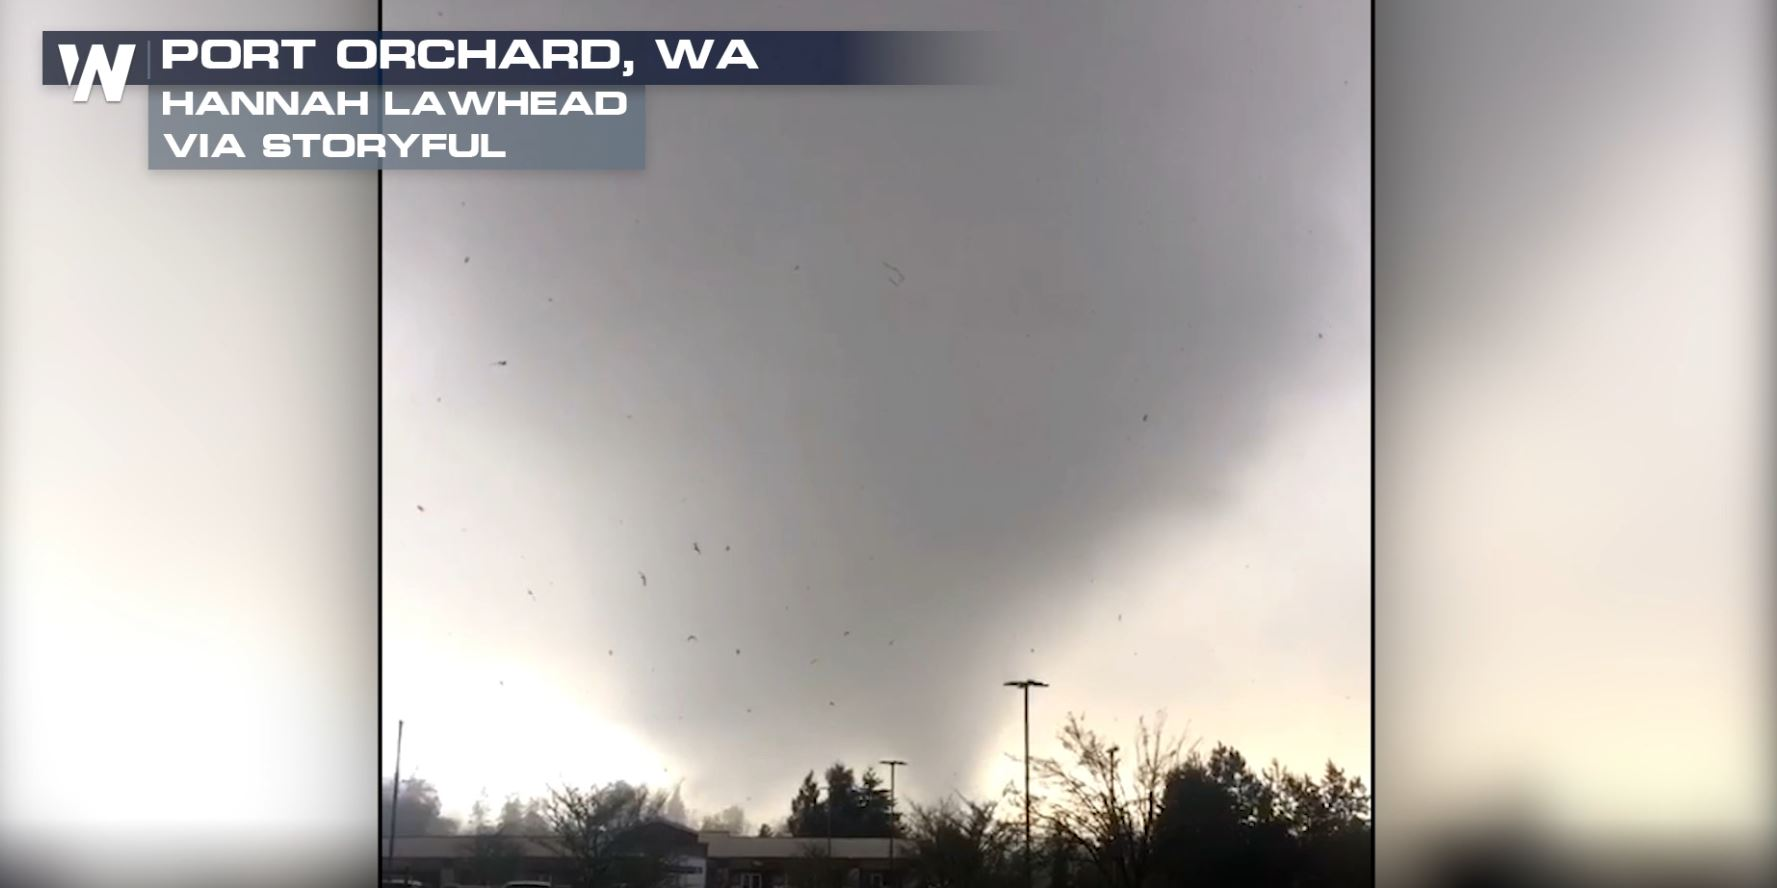 Port Orchard Tornado an EF-2